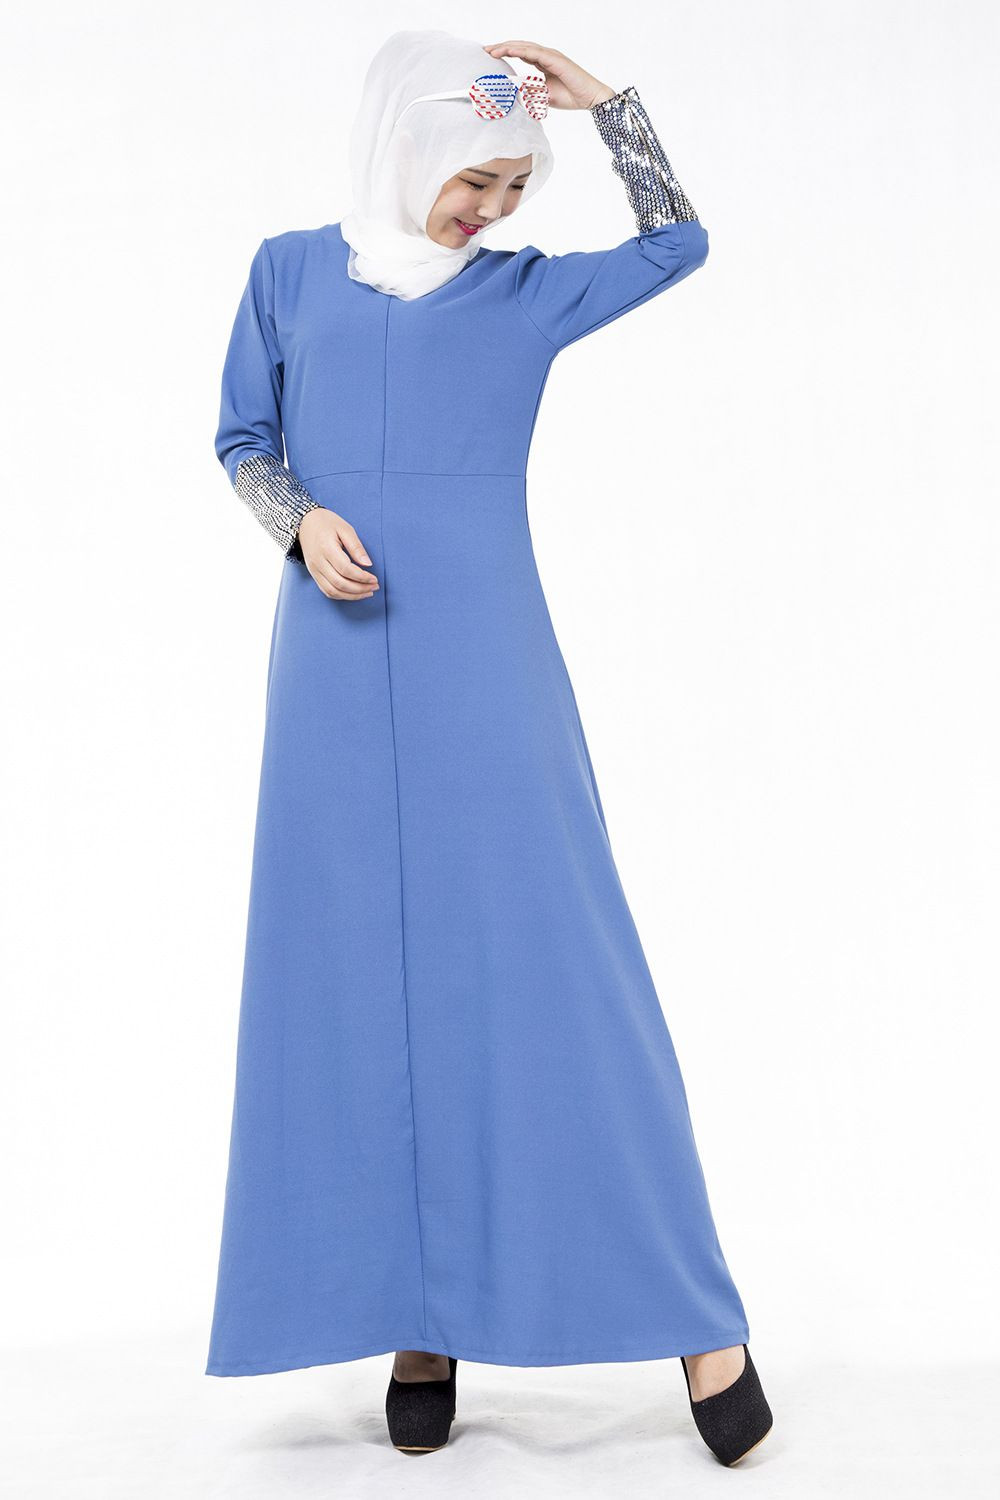 New Arrival Adult Jilbabs And Abayas african maxi dresses for women ... 221361a6085d